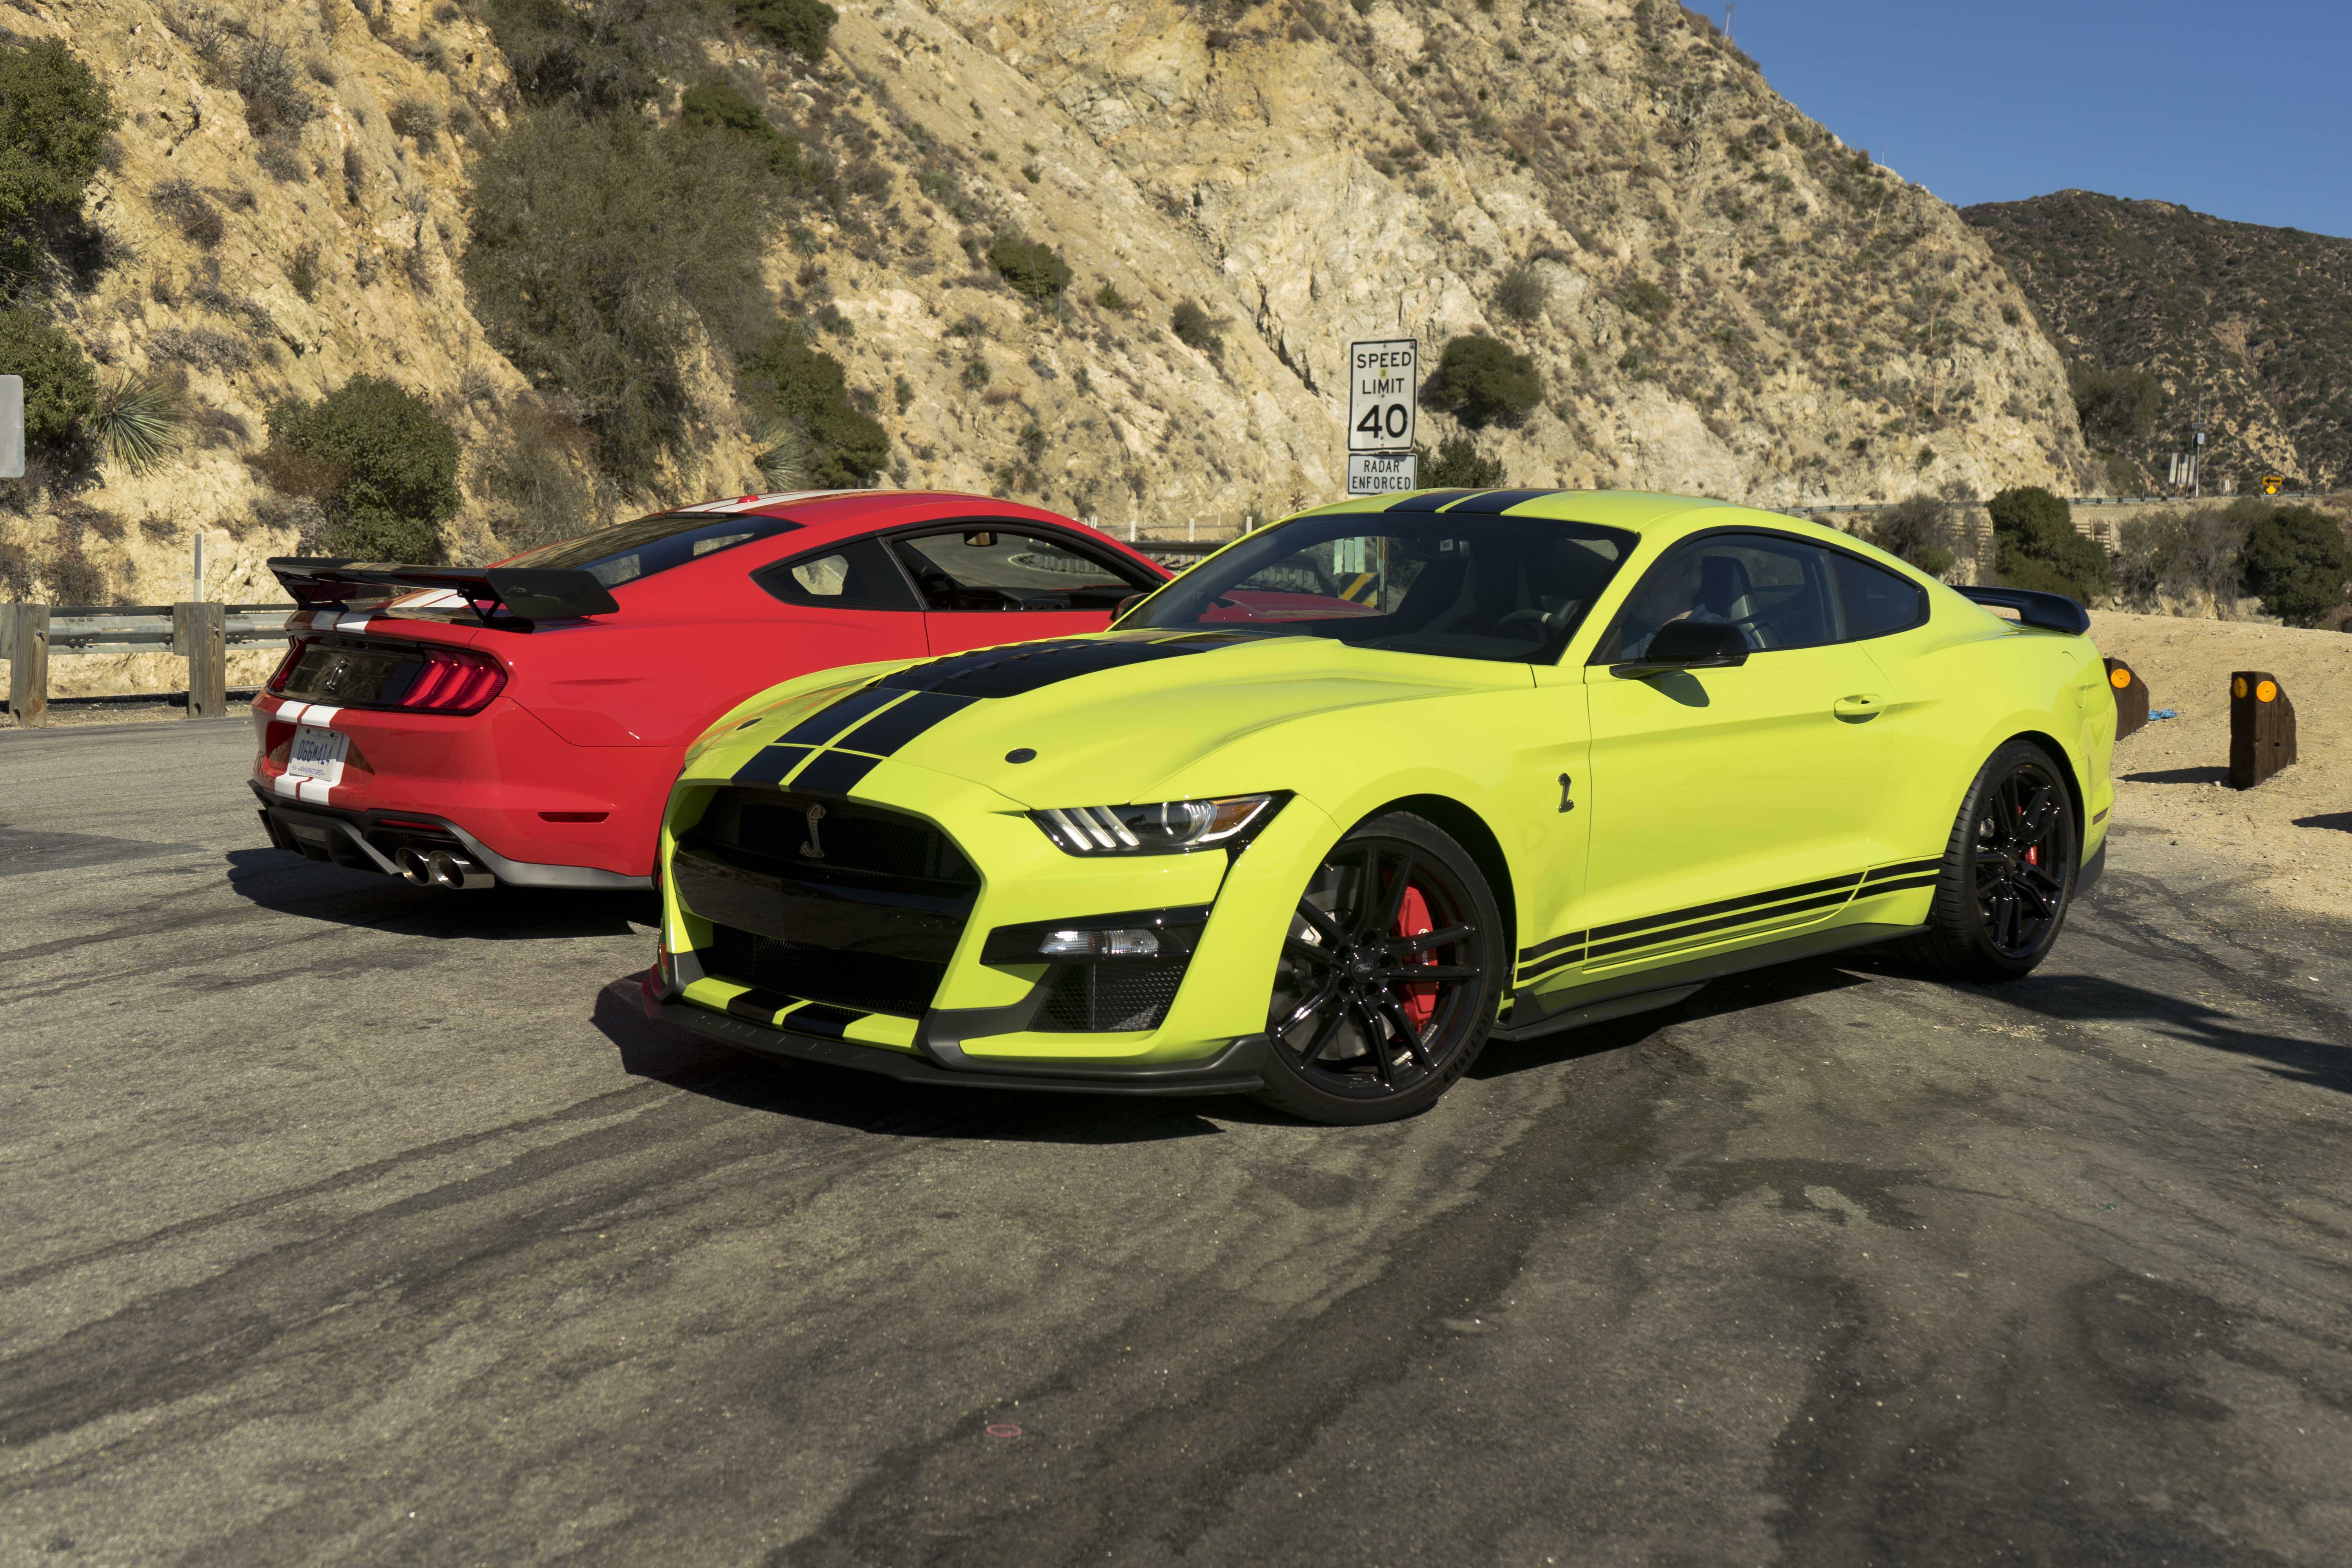 First Drive: 2020 Ford Mustang Shelby GT500 - WHEELS.ca